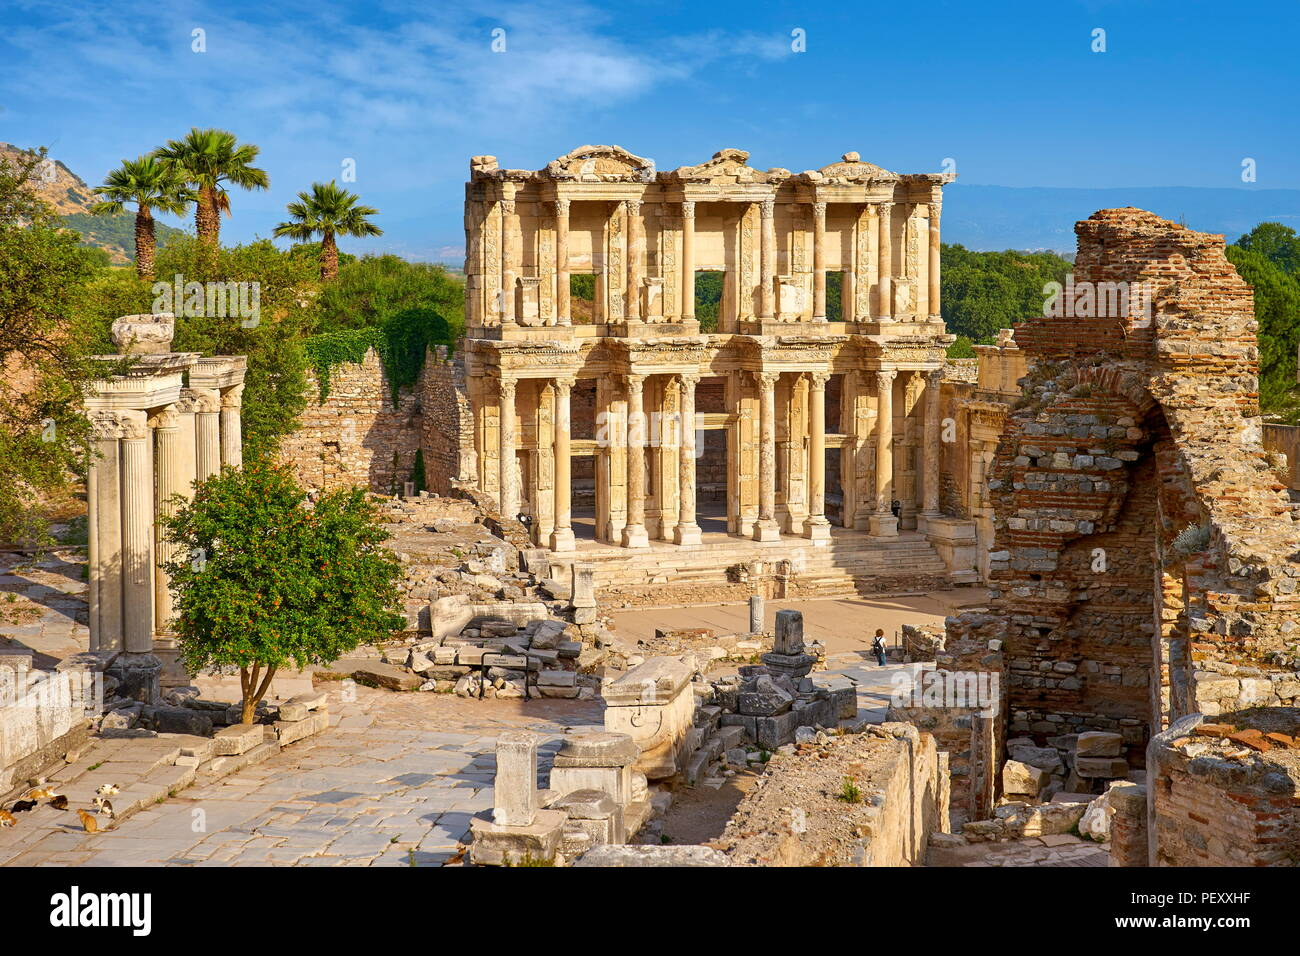 Library of Celsus in Ephesus Ancient City, Efes, Izmir, Turkey - Stock Image